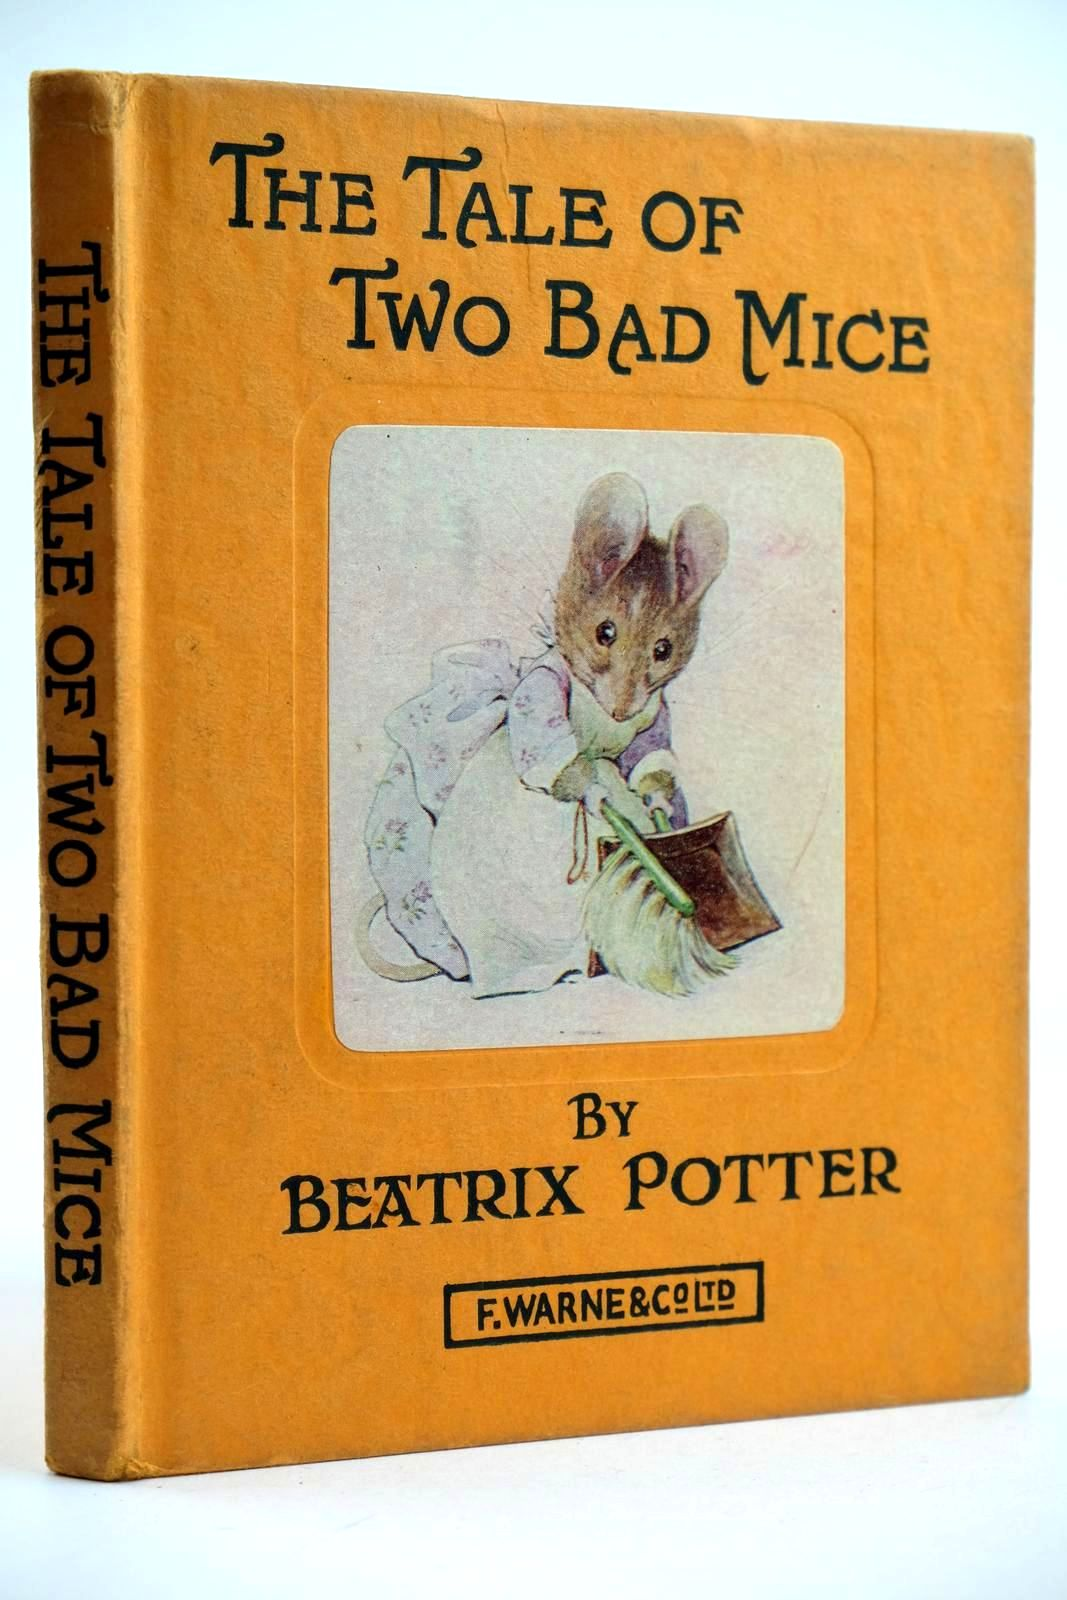 Photo of THE TALE OF TWO BAD MICE written by Potter, Beatrix illustrated by Potter, Beatrix published by Frederick Warne & Co Ltd. (STOCK CODE: 2132067)  for sale by Stella & Rose's Books